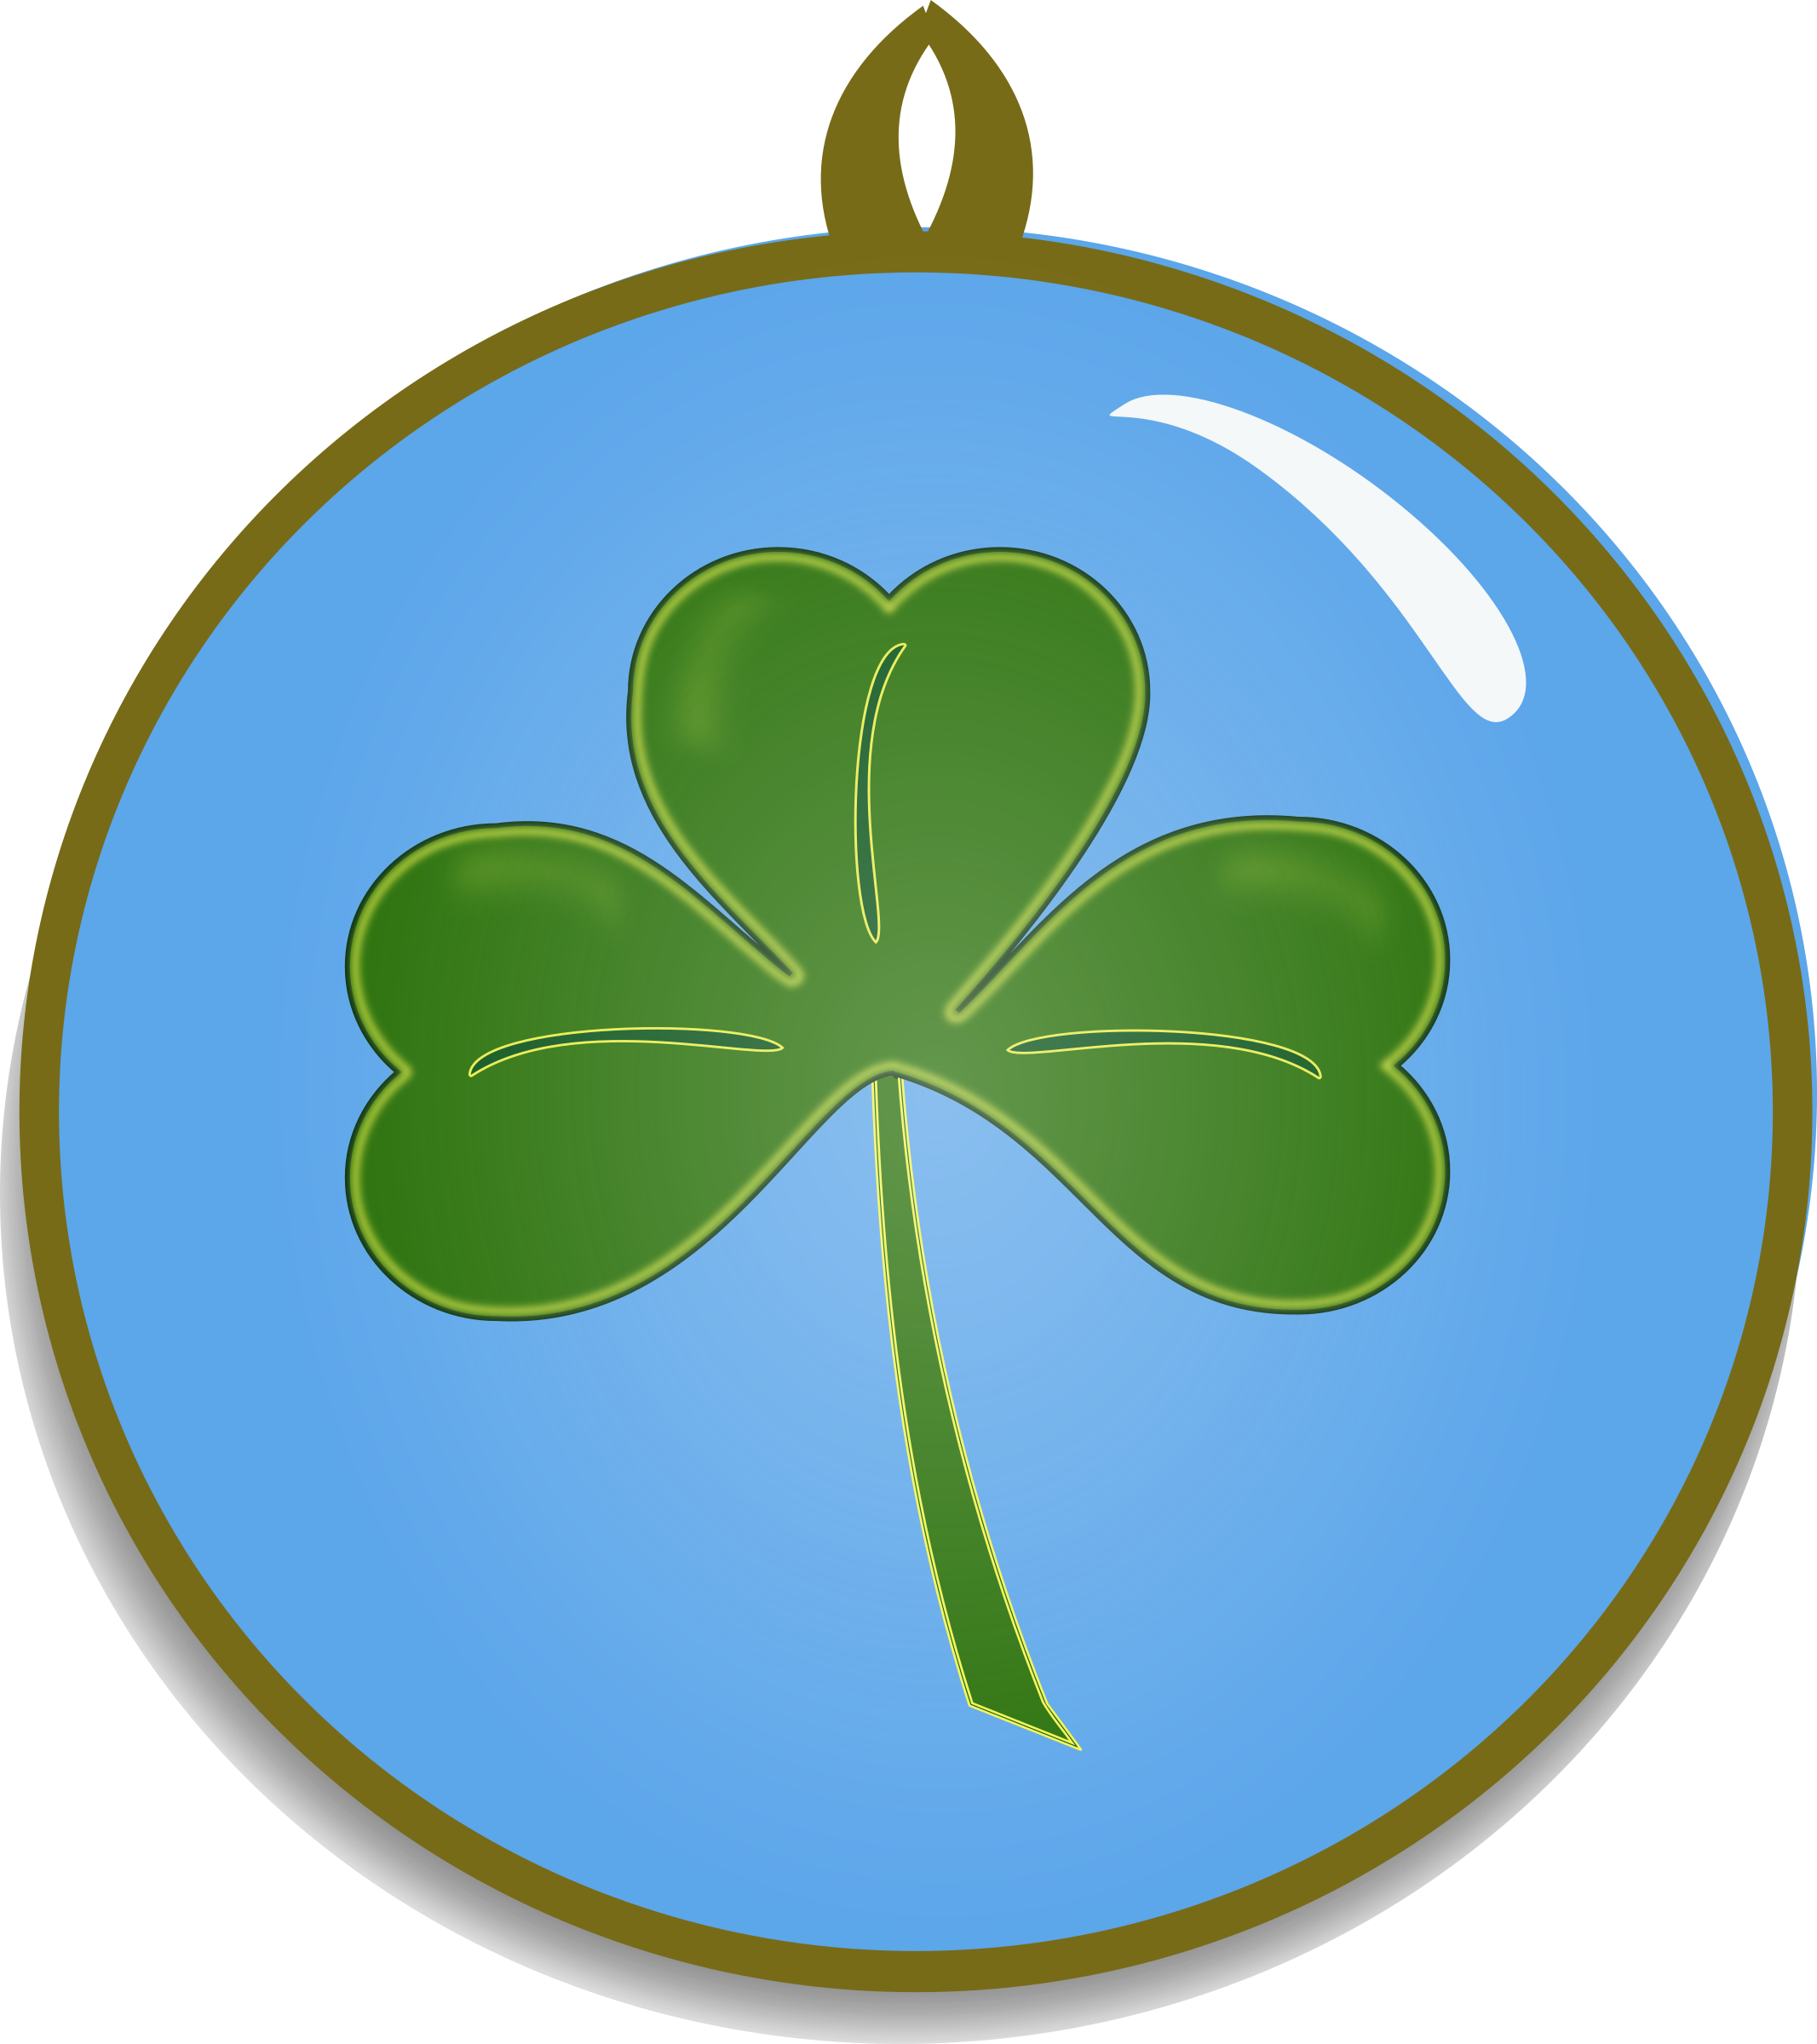 Lucky clipart images graphic library stock Clipart - Lucky Charm graphic library stock